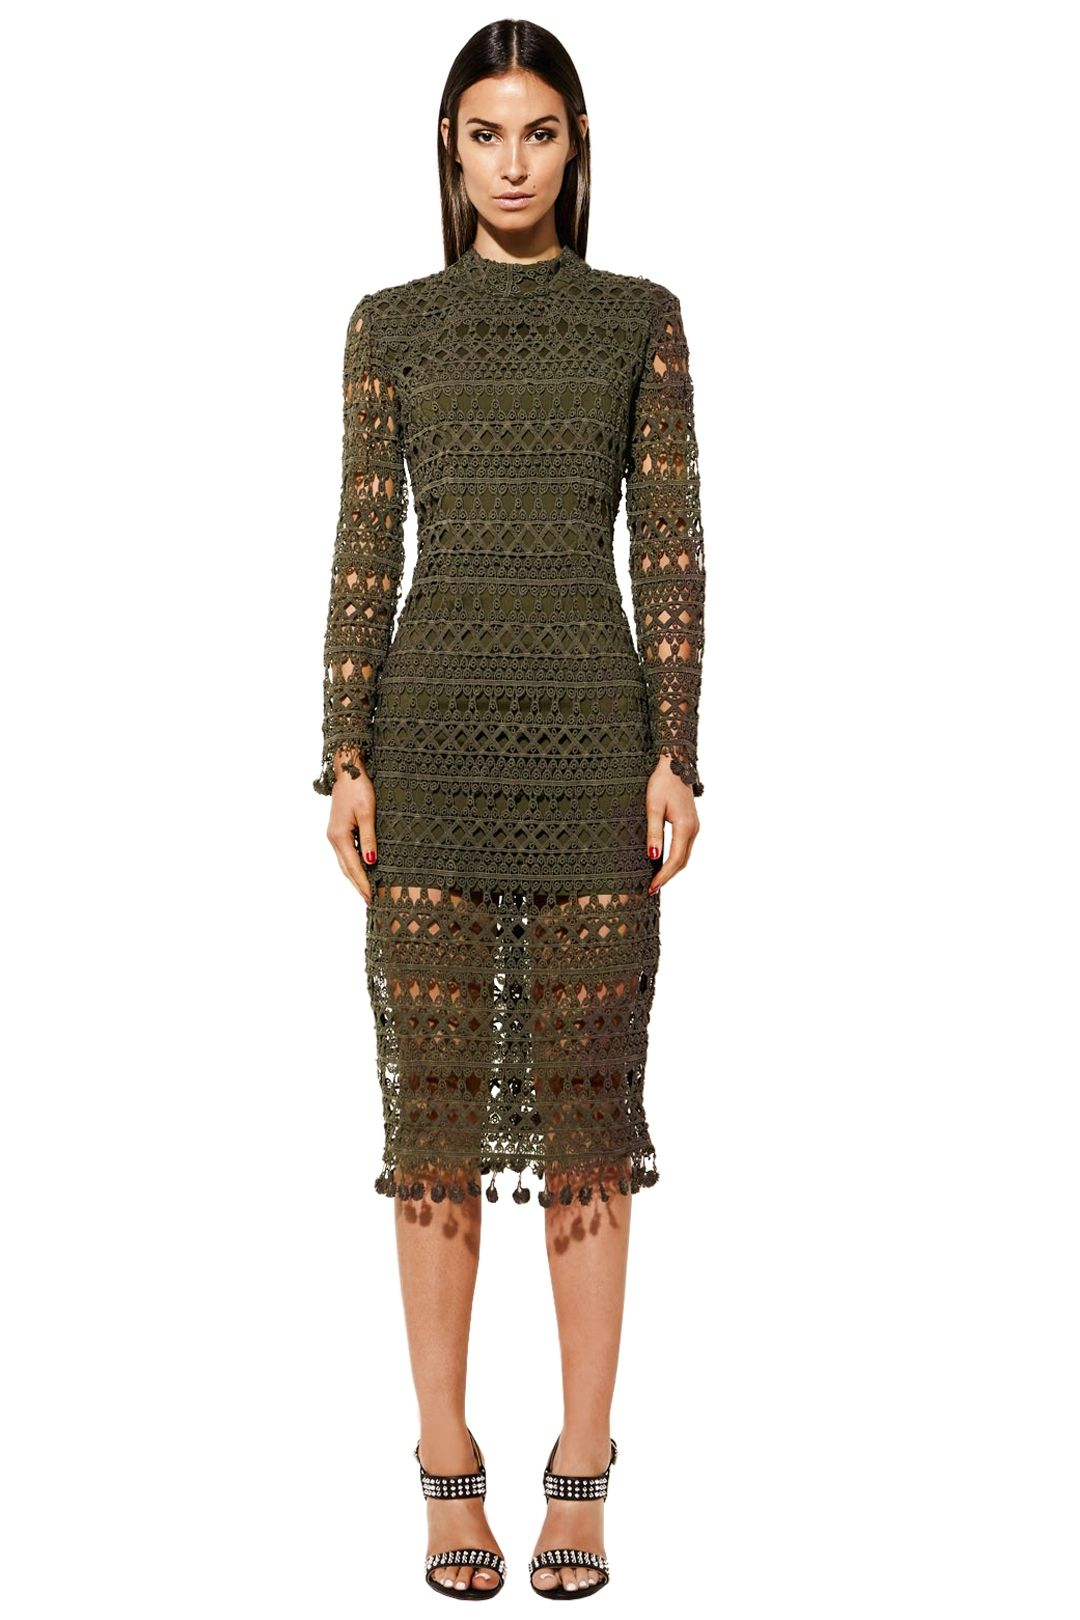 Mossman - See No Boundaries Dress - Khaki - Front